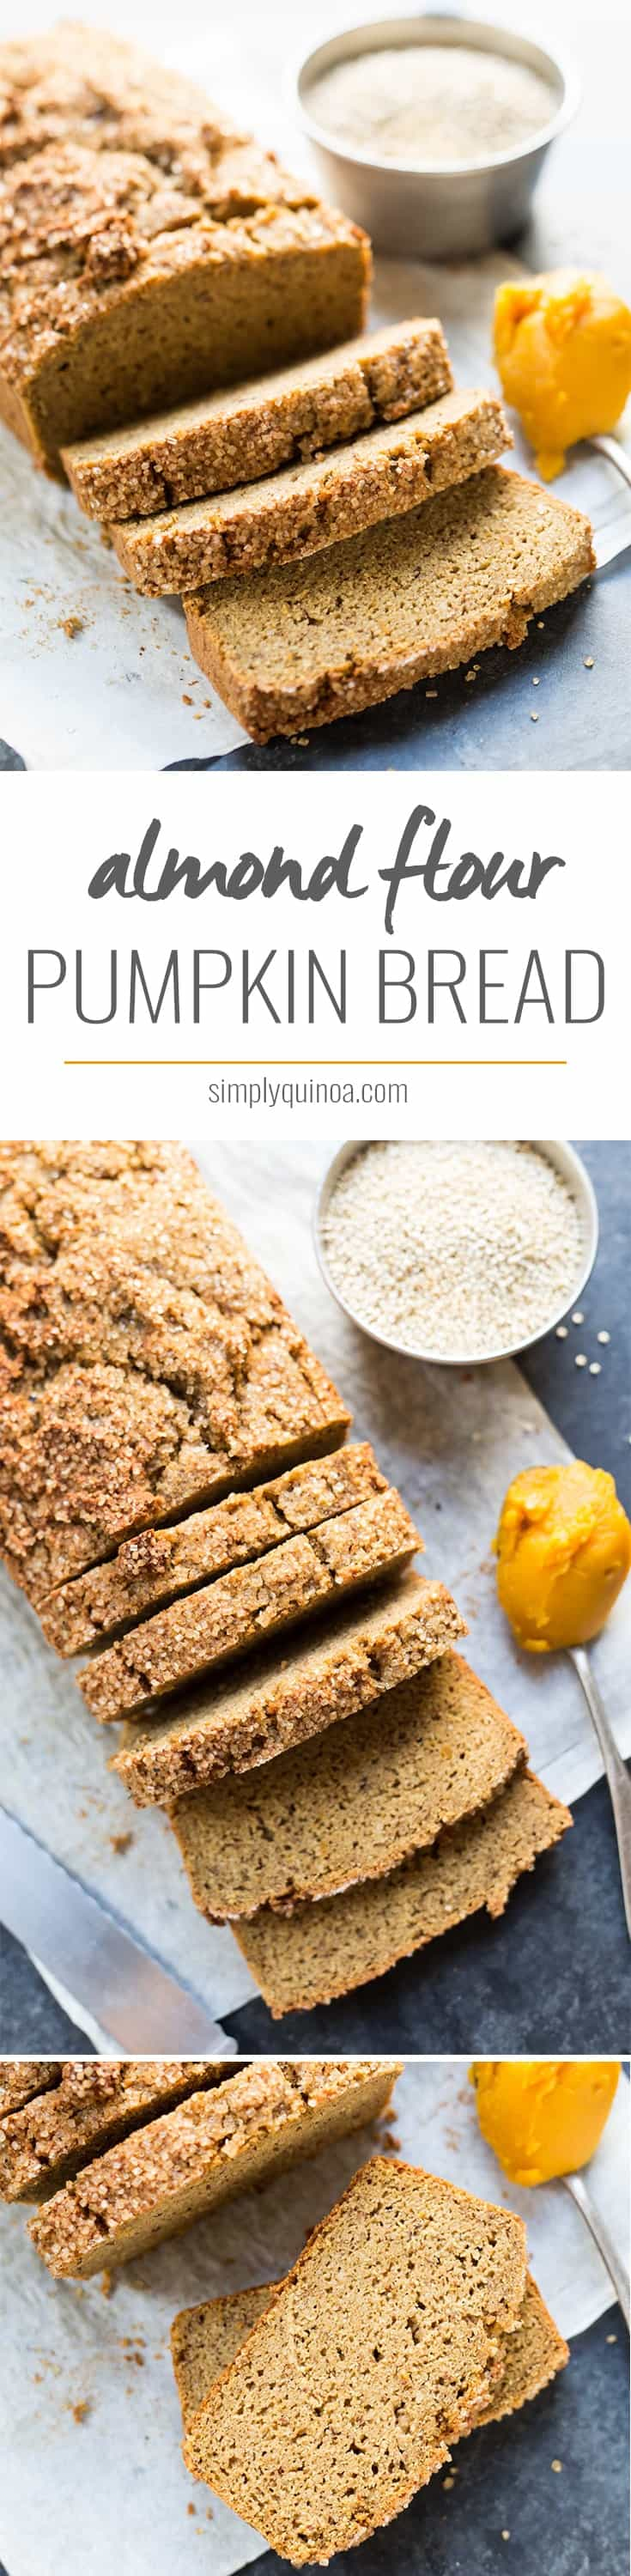 QUINOA & ALMOND FLOUR PUMPKIN BREAD -- high in protein and so delicious! [6g protein, 3g fiber per slice]